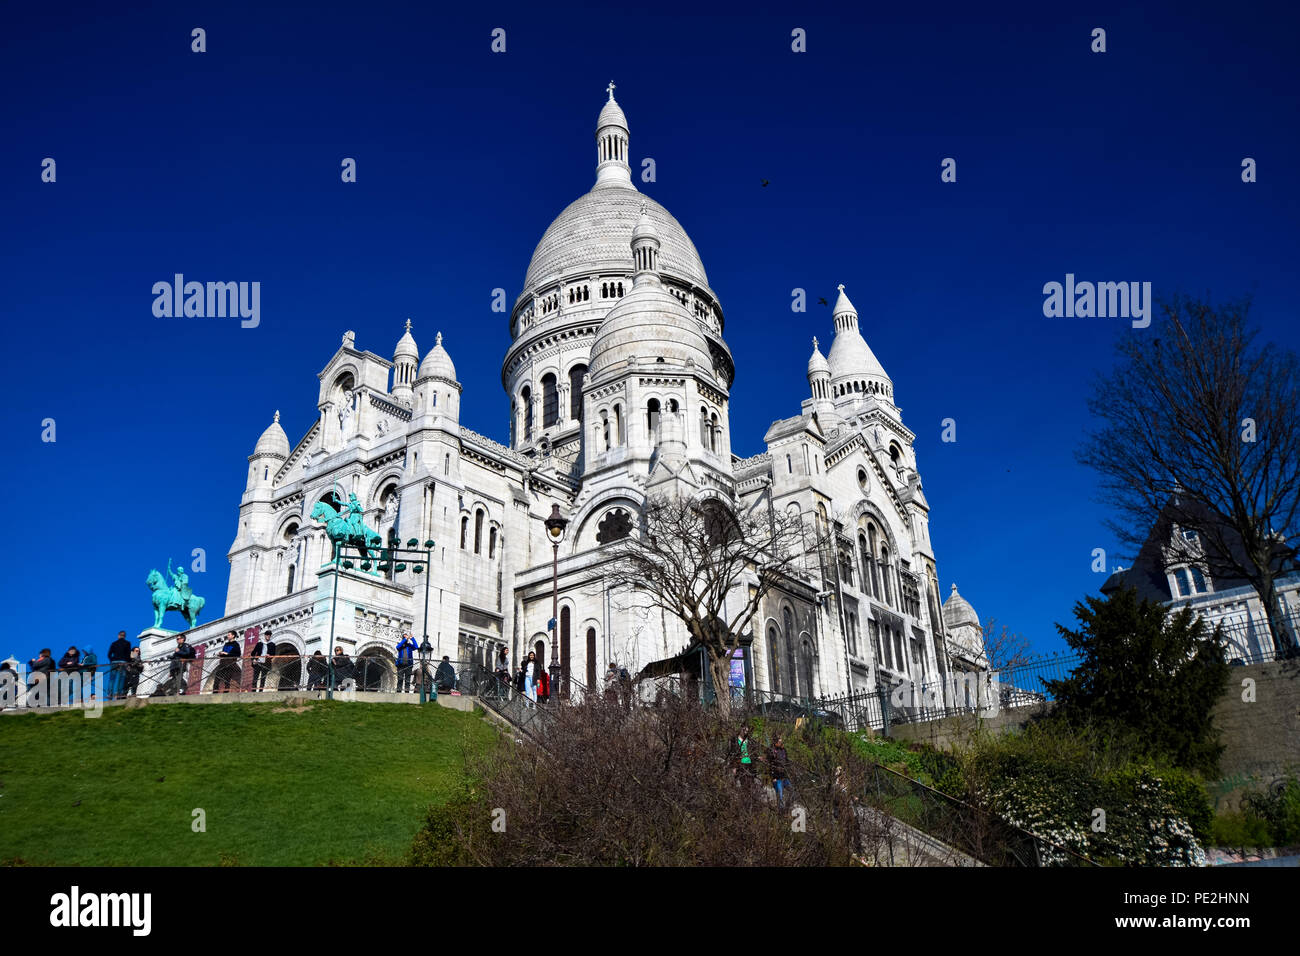 The basilica of Sacre Coeur on Montmartre in Paris, Frances - Stock Image